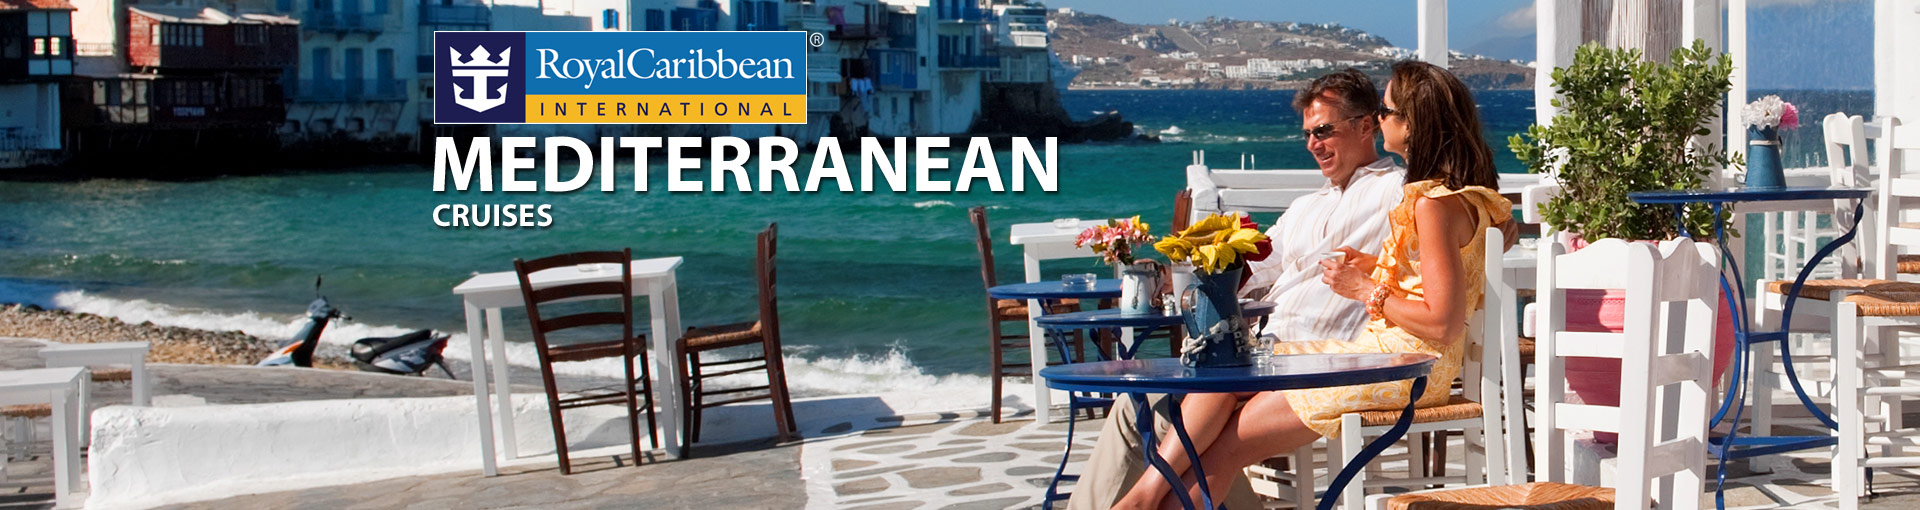 Royal Caribbean Mediterranean Cruises 2018 And 2019